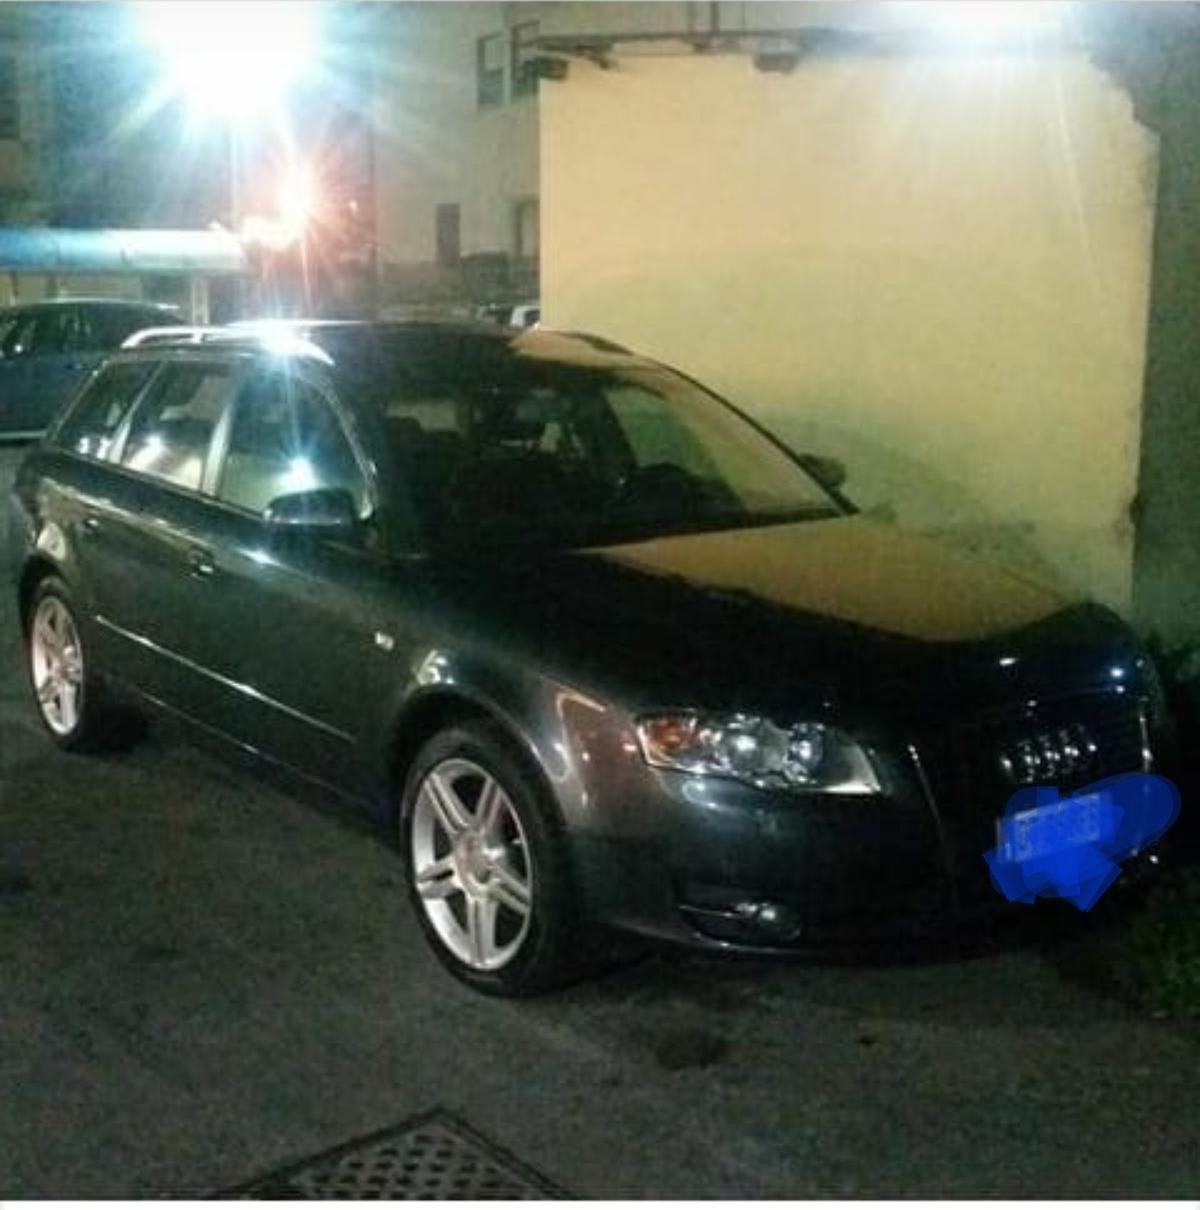 Ricambi Audi A4 B7 In 00043 Ciampino For Free For Sale Shpock